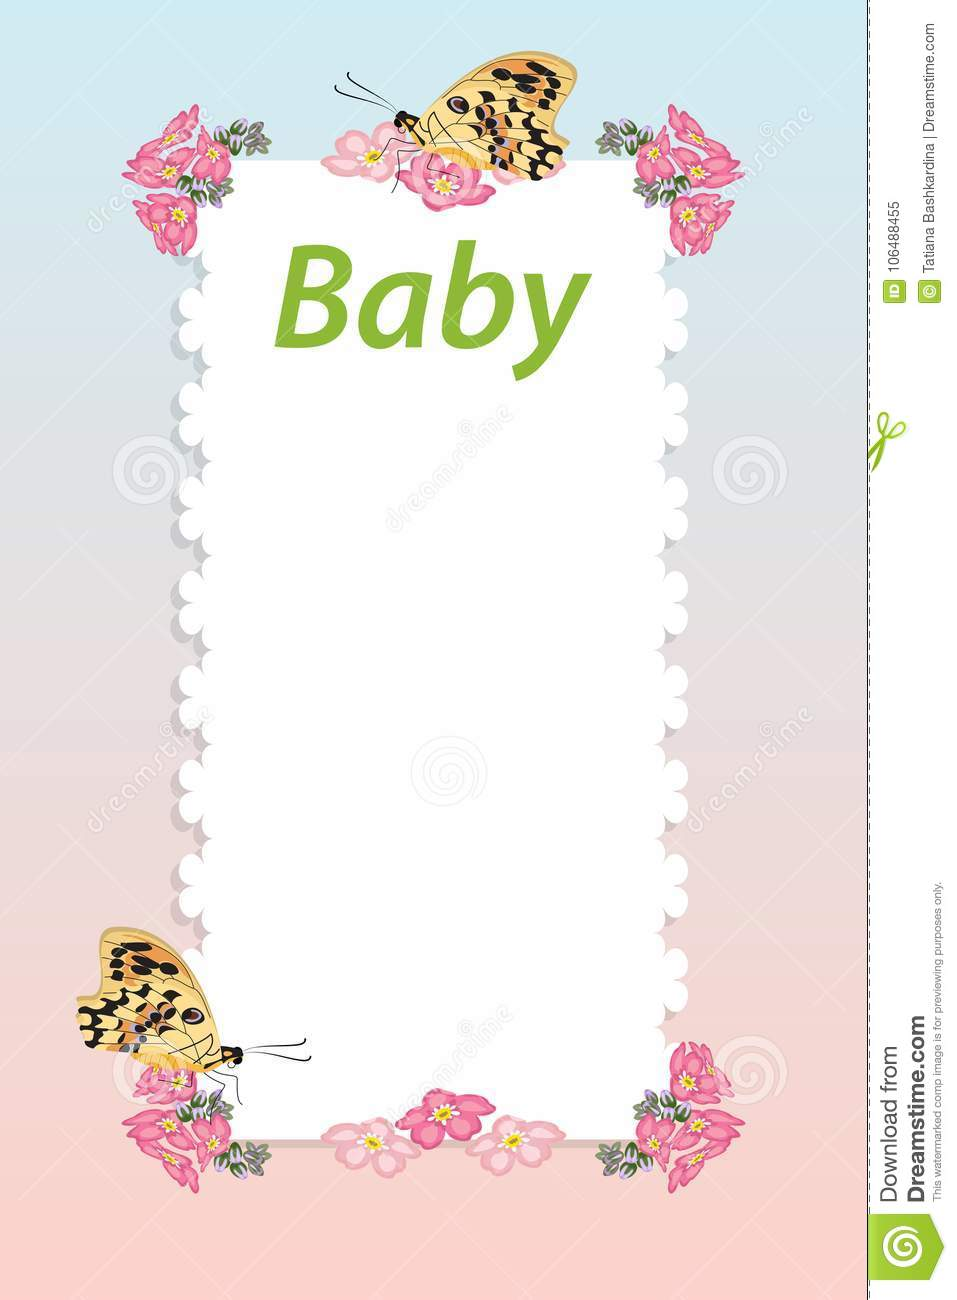 Baby Shower Invitation Arrival Card With Place For Text